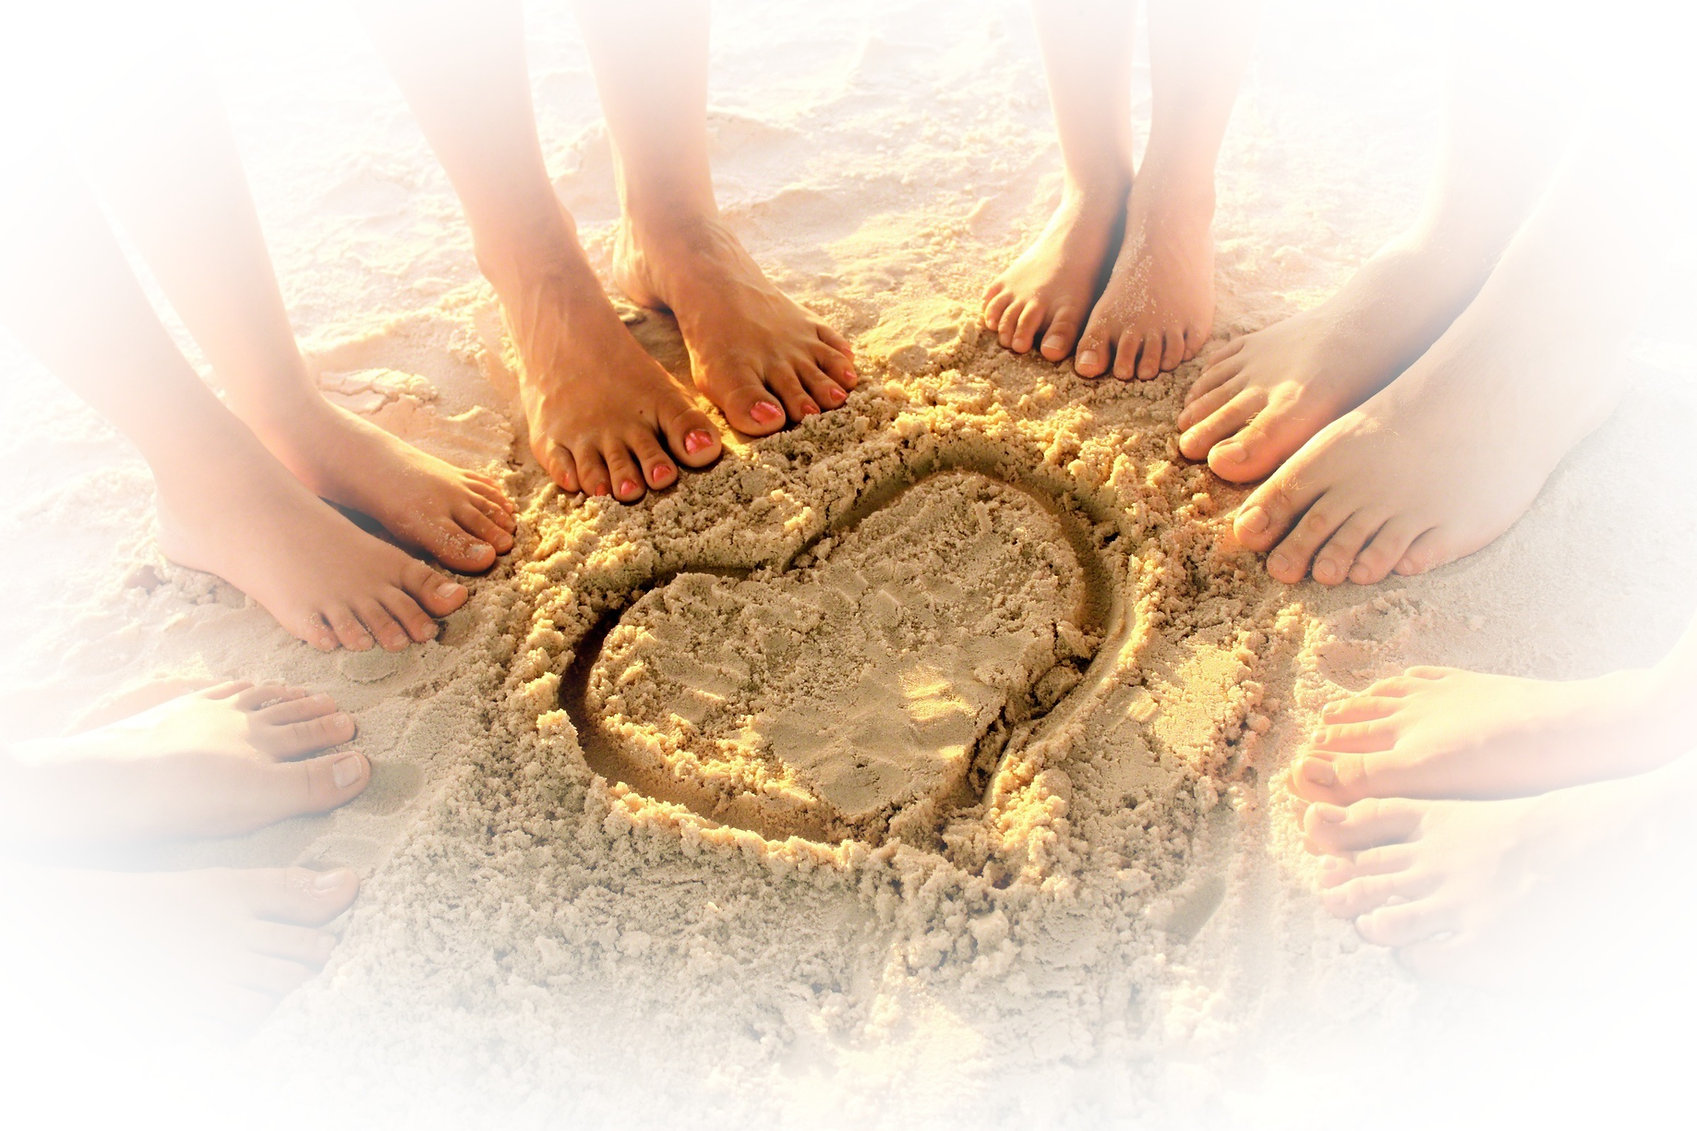 feet-beach-sand-heart-892724-wallpaper_e